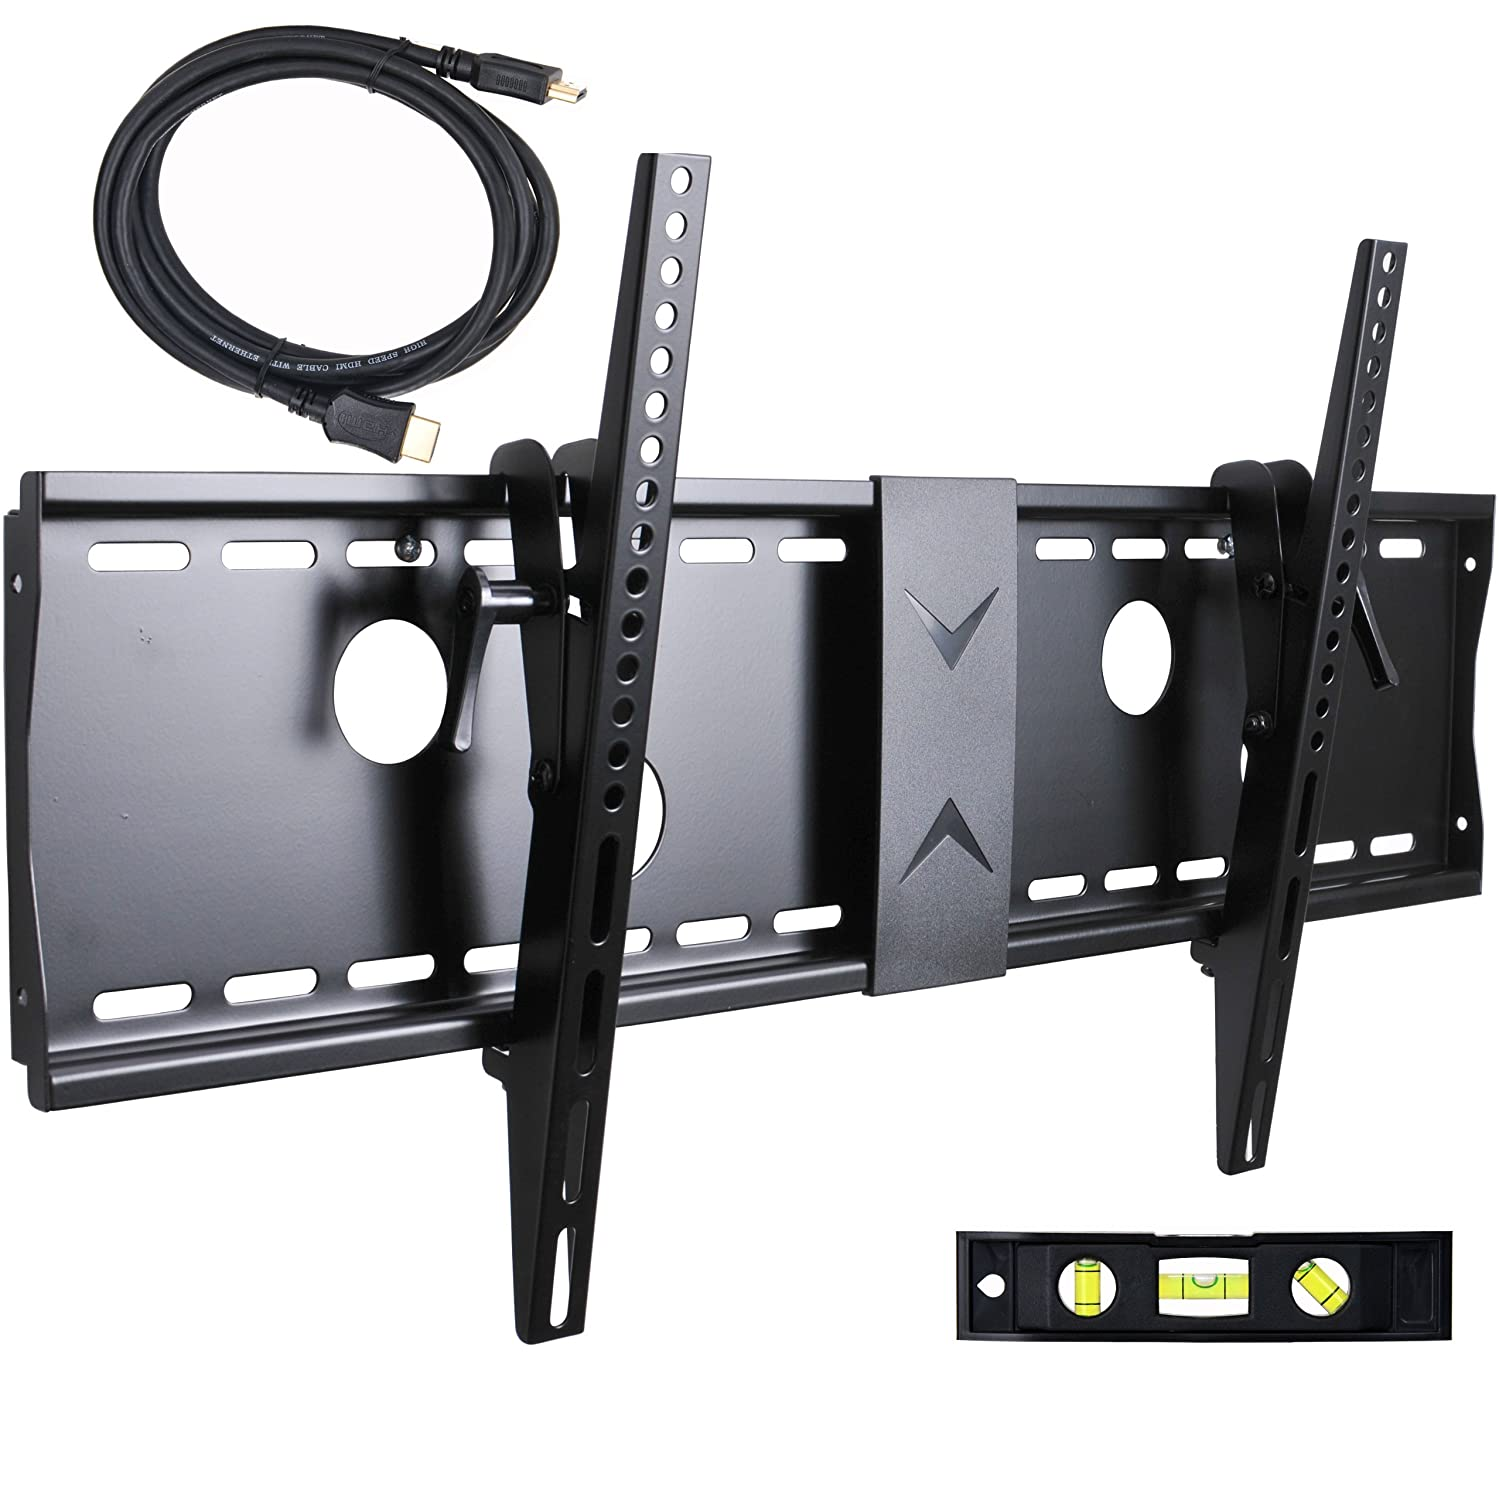 Videosecu Tilt Flat Screen Tv Wall Mount Bracket For 37 Wallmounted Led Lcd And Plasma Tv39s Electronics 40 42 46 47 50 52 55 58 60 62 63 65 70 75 Max Vesa 700x400mm With